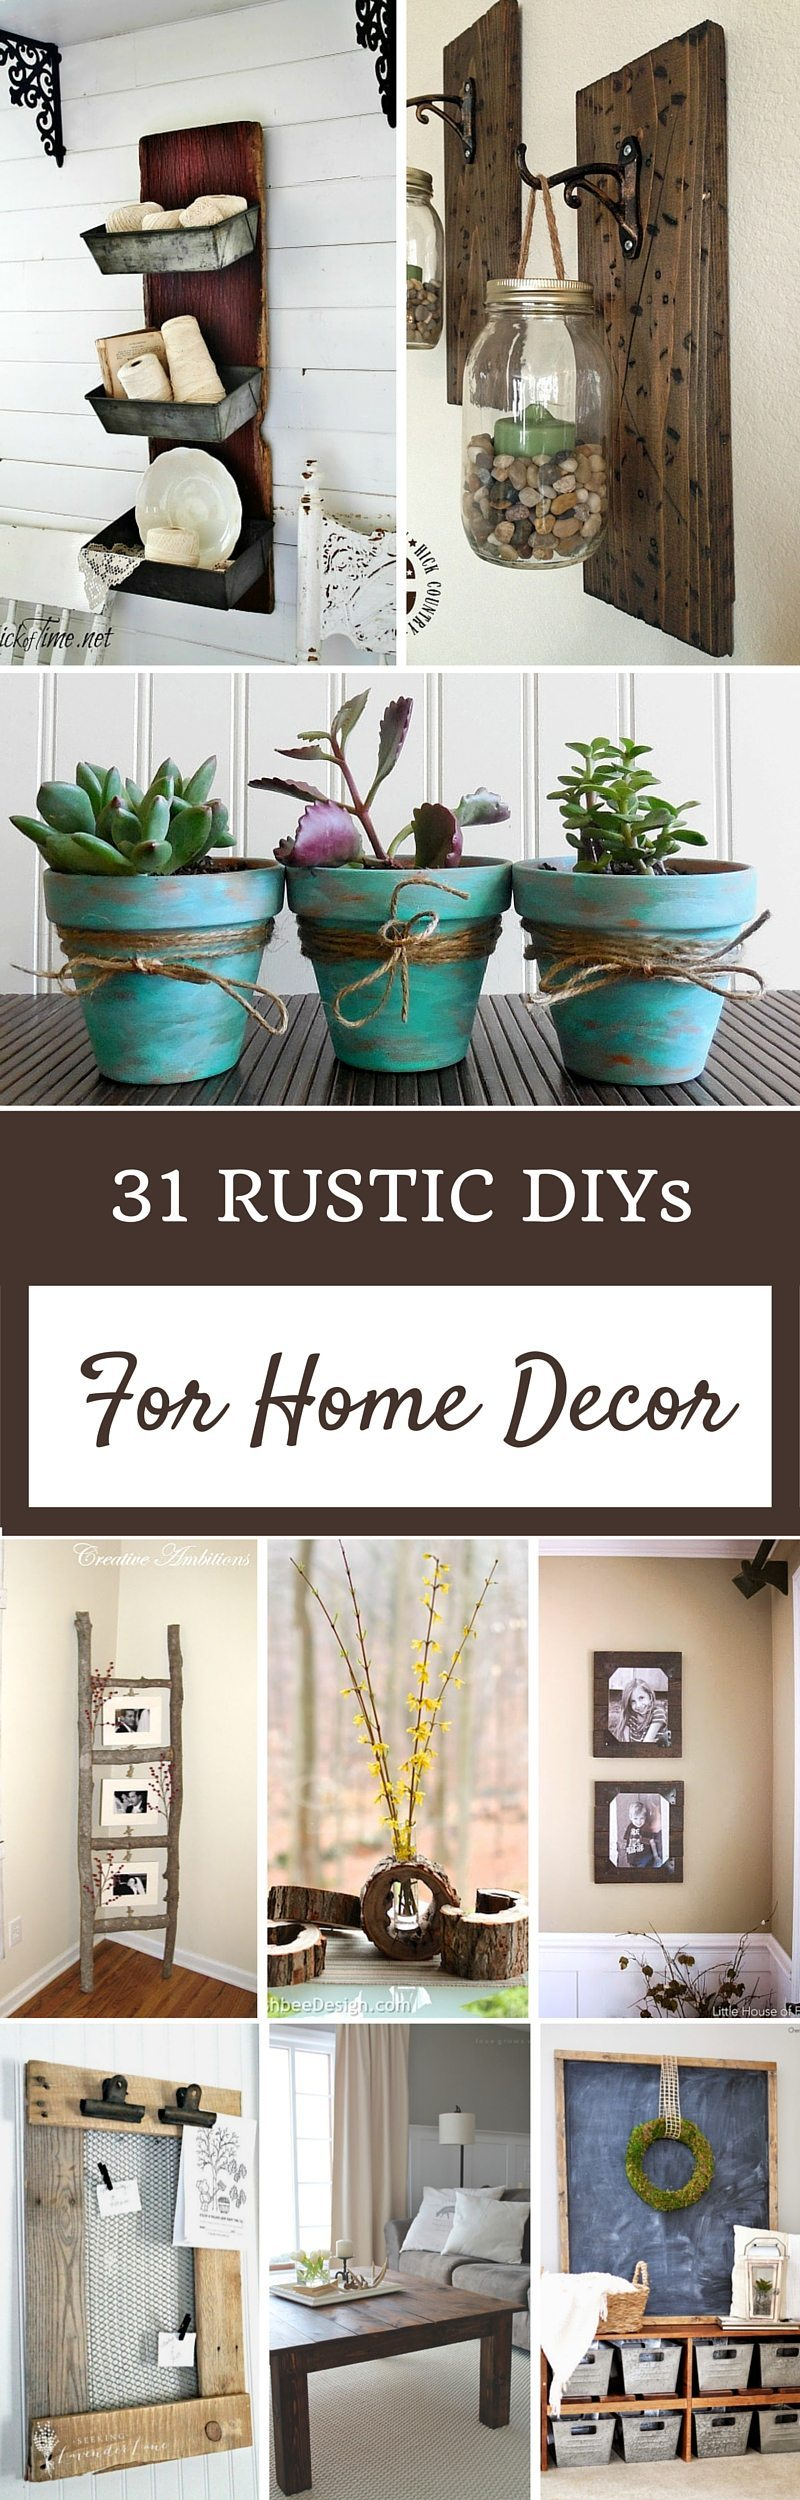 Rustic home decor ideas refresh restyle - Home decor texas ideas ...